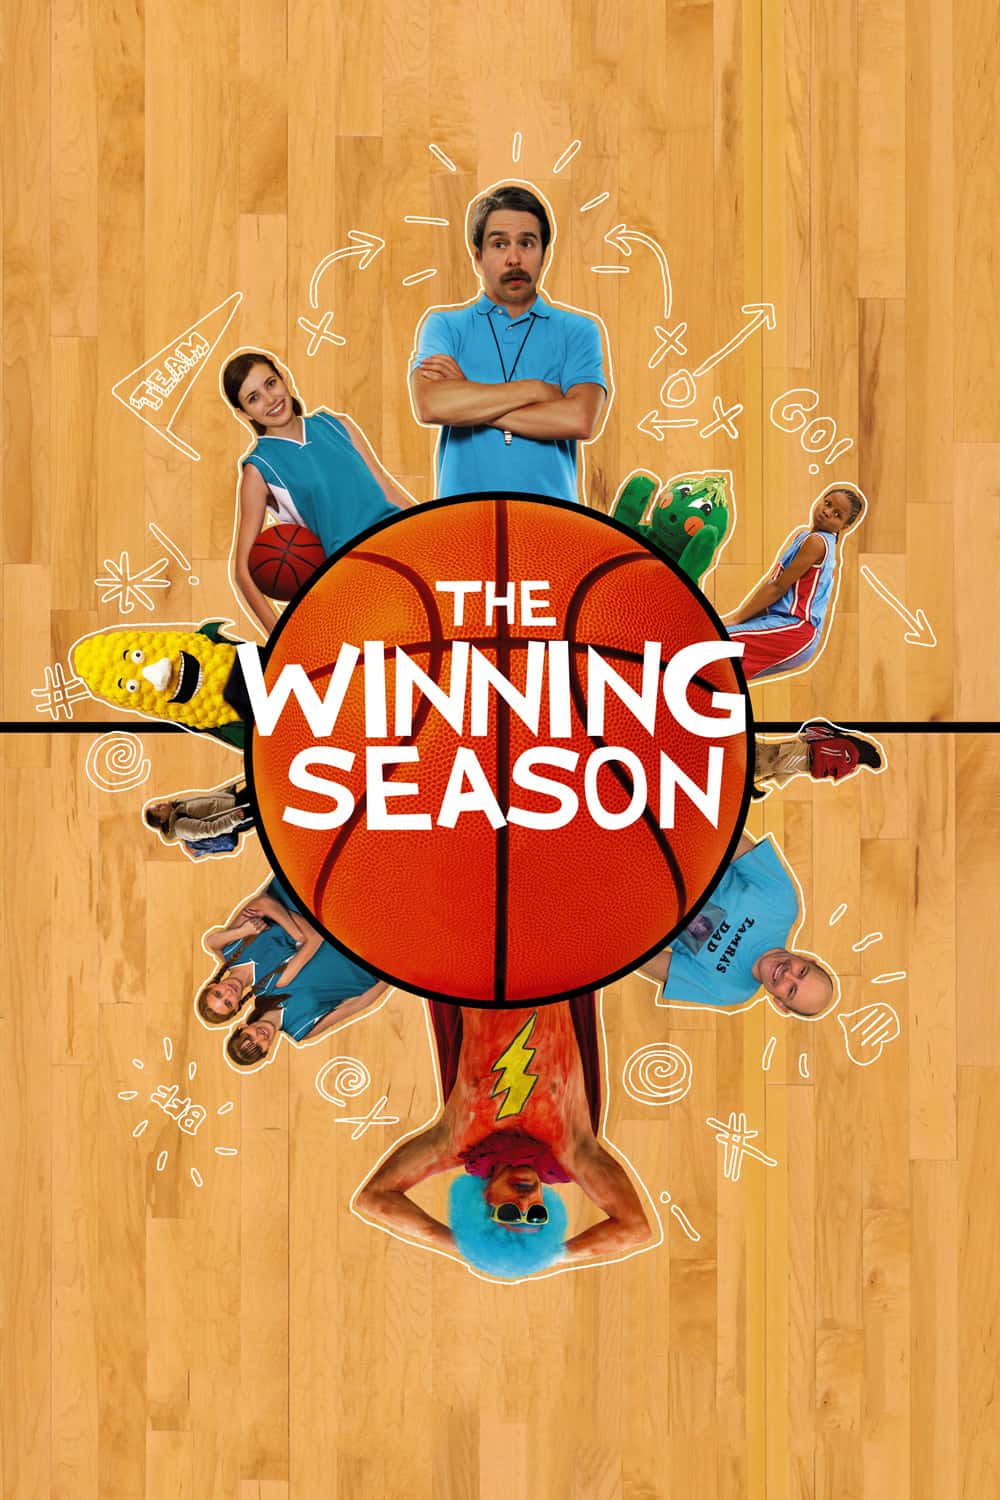 The Winning Season, 2009